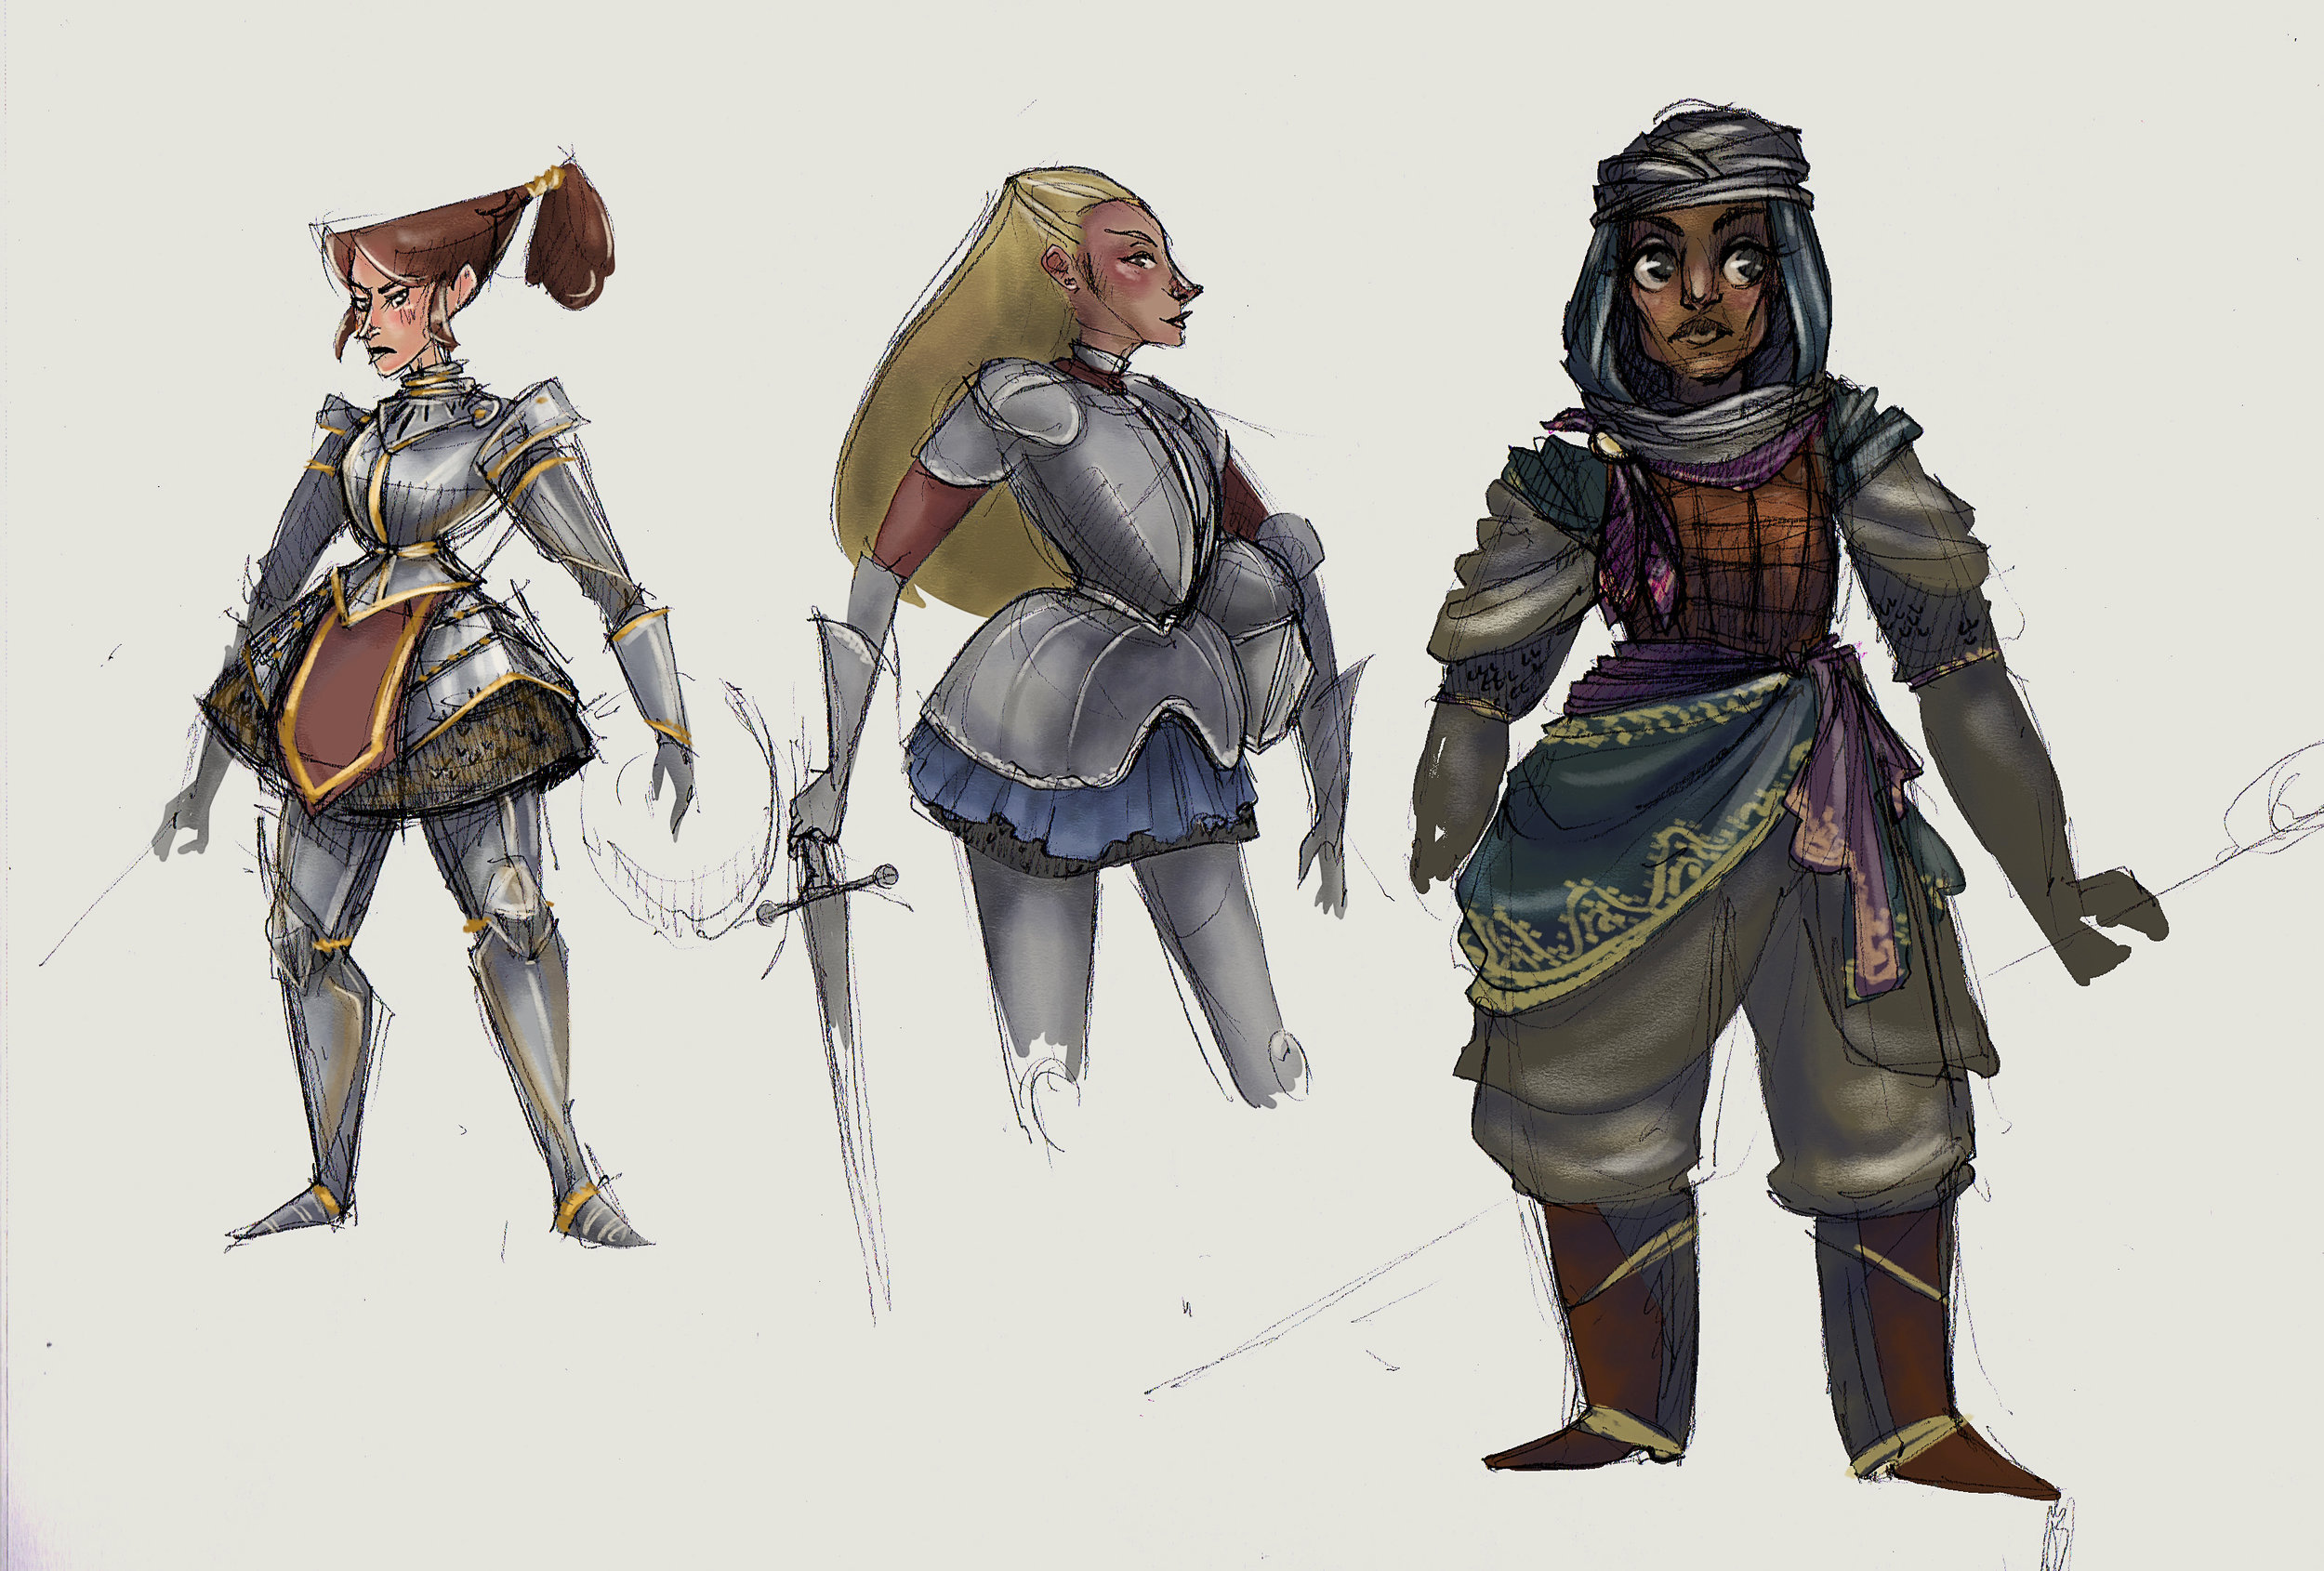 lady knights1_2_edit2.jpg